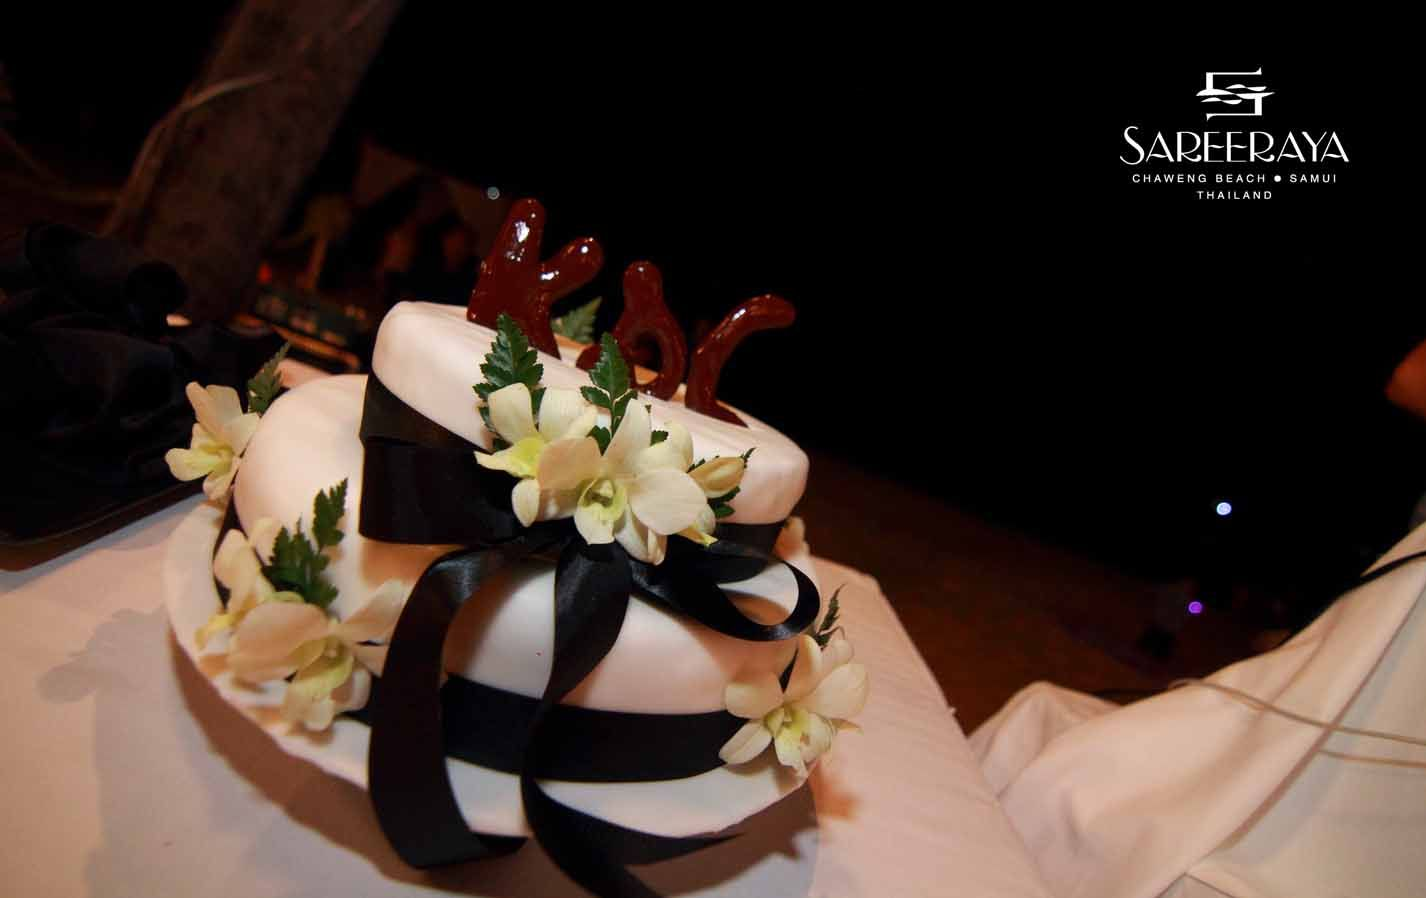 Who Doesn't Love Chocolate! Chocolate Cake with Black Ribbon and Chocolate Initials of Bride & Groom.